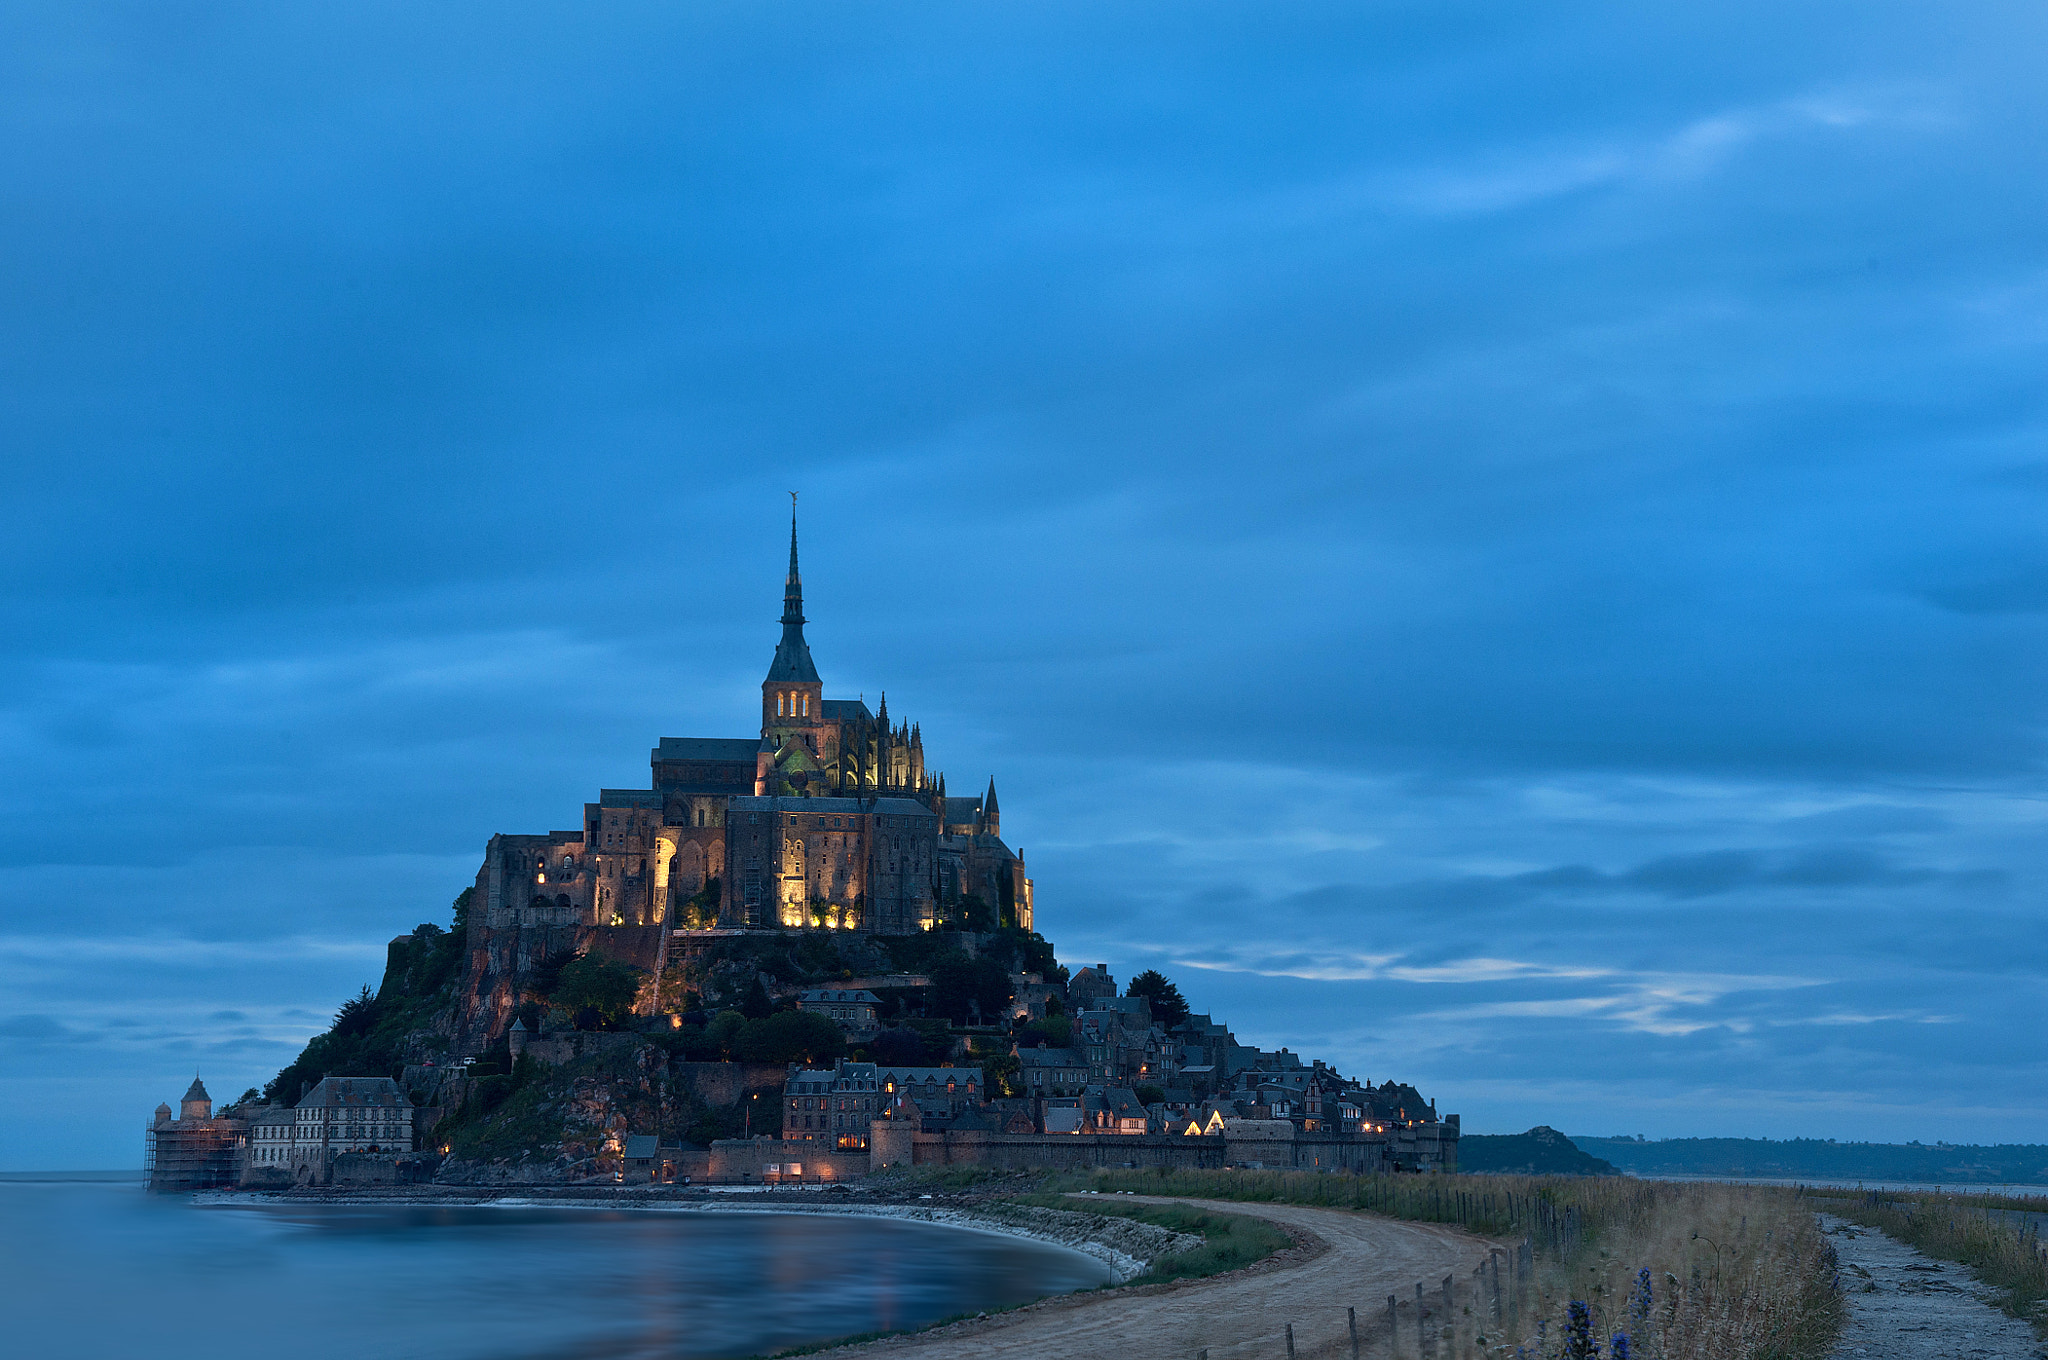 Photograph Mont Saint Michel at dusk by Paolo Bugnone on 500px